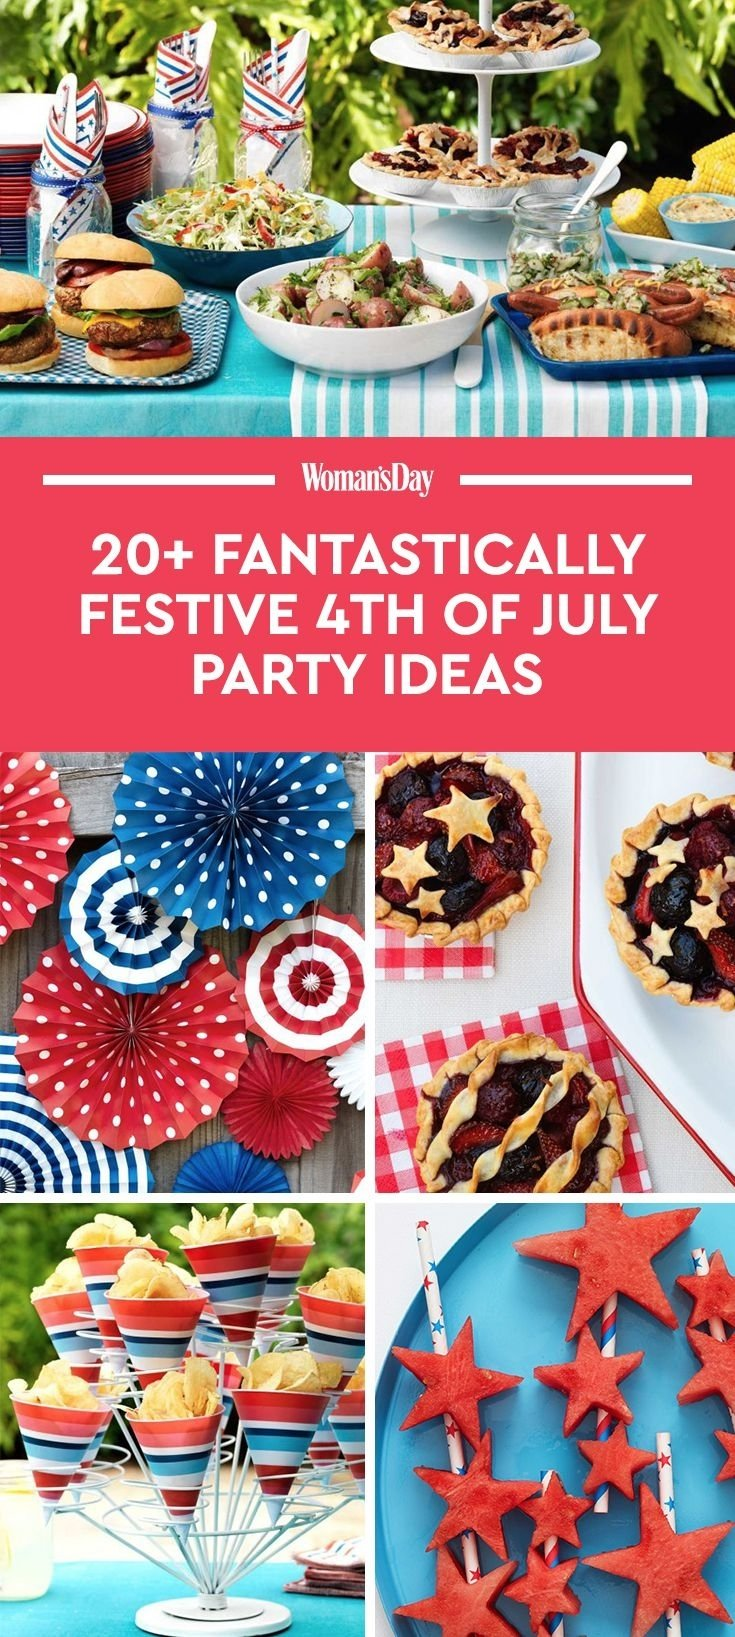 10 Unique 4Th Of July Cookout Ideas 24 4th of july party ideas food decor for a fourth of july cookout 10 2020